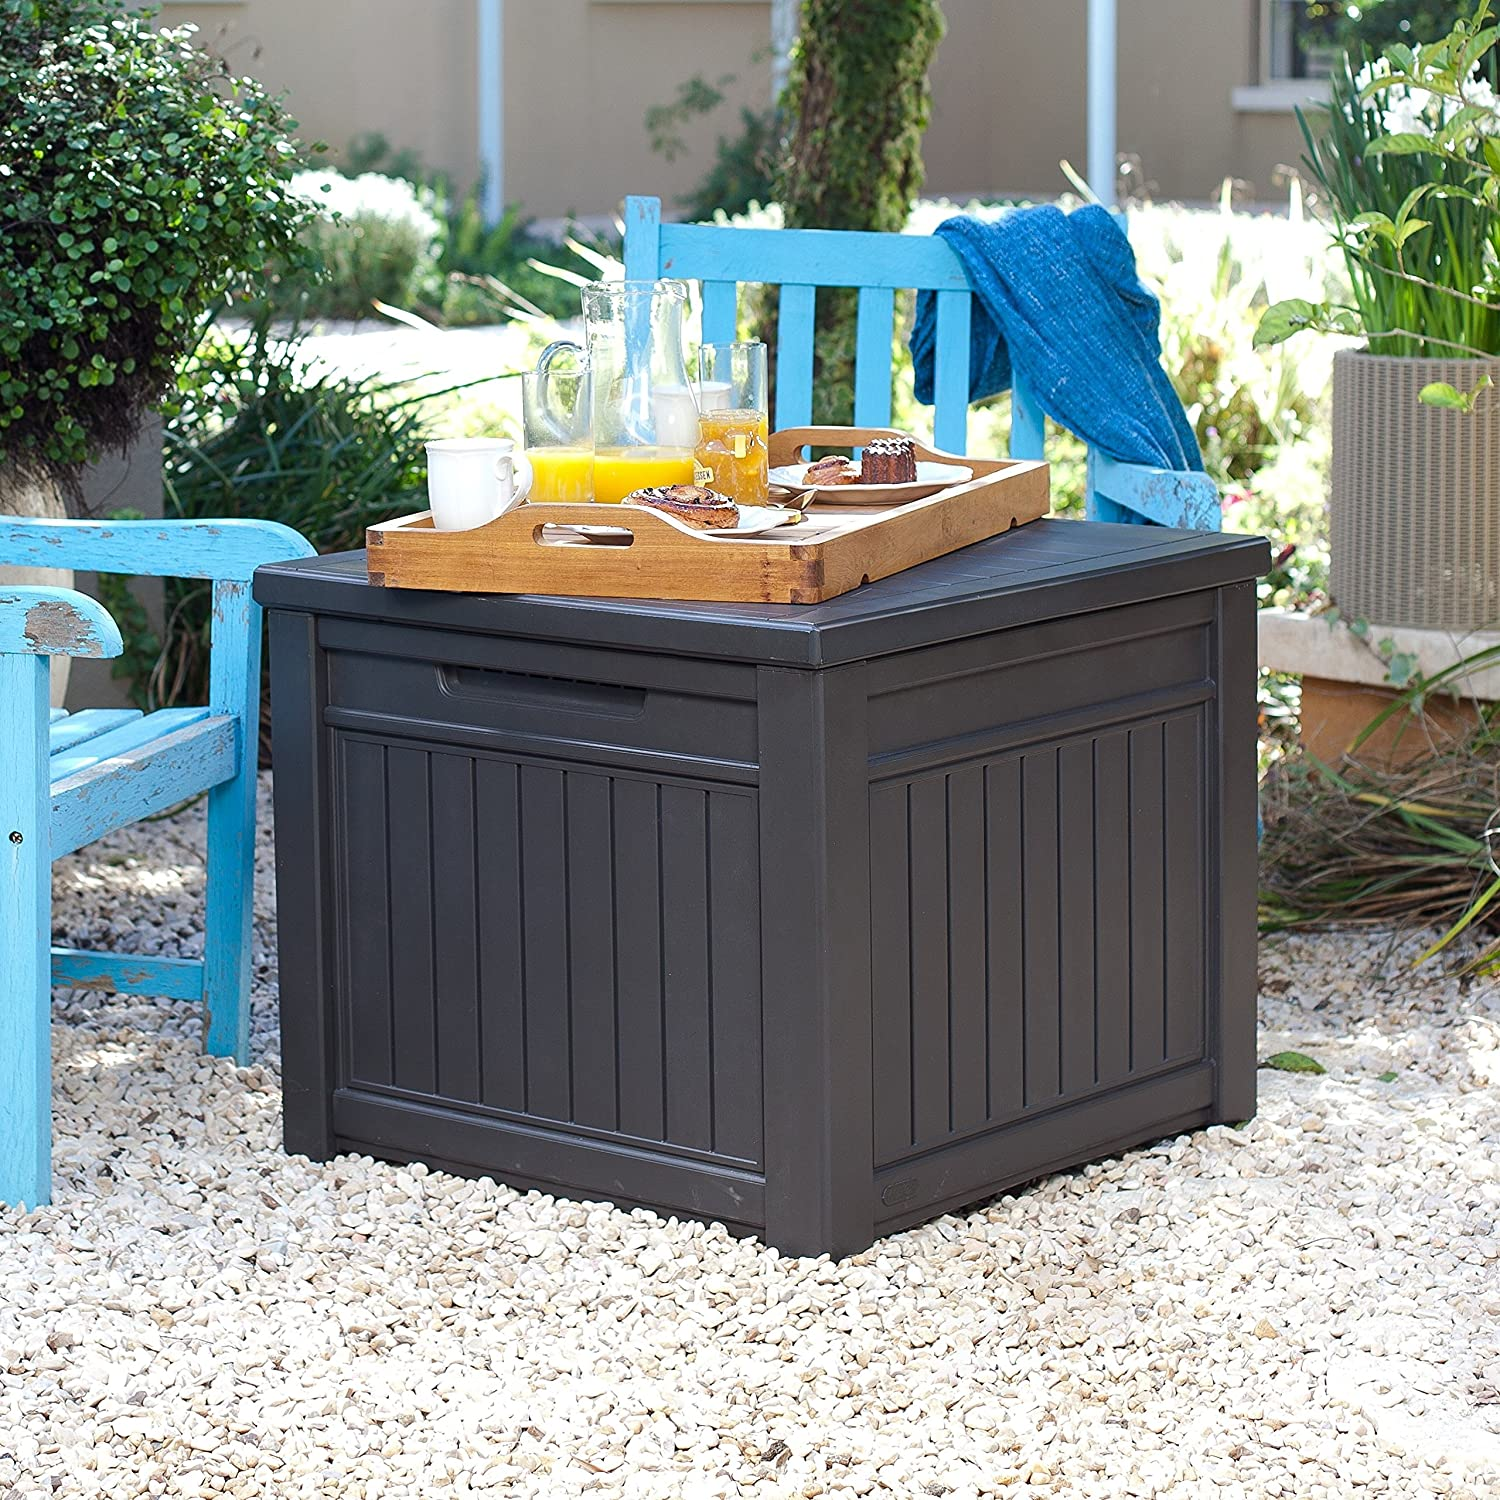 Attractive Amazon.com : Keter Cube Wood Look 55 Gallon All Weather Garden Patio Storage  Table Or Bench : Garden U0026 Outdoor